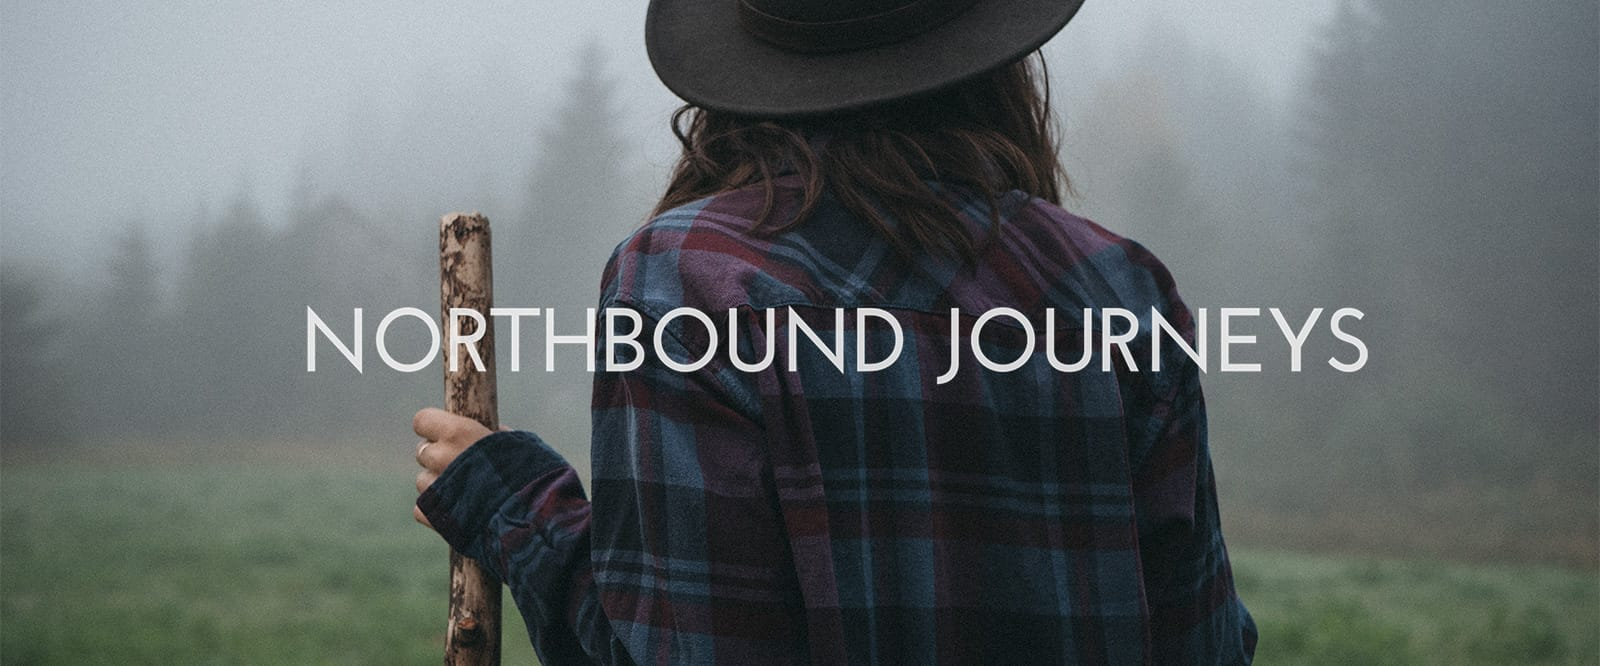 Northbound Journeys